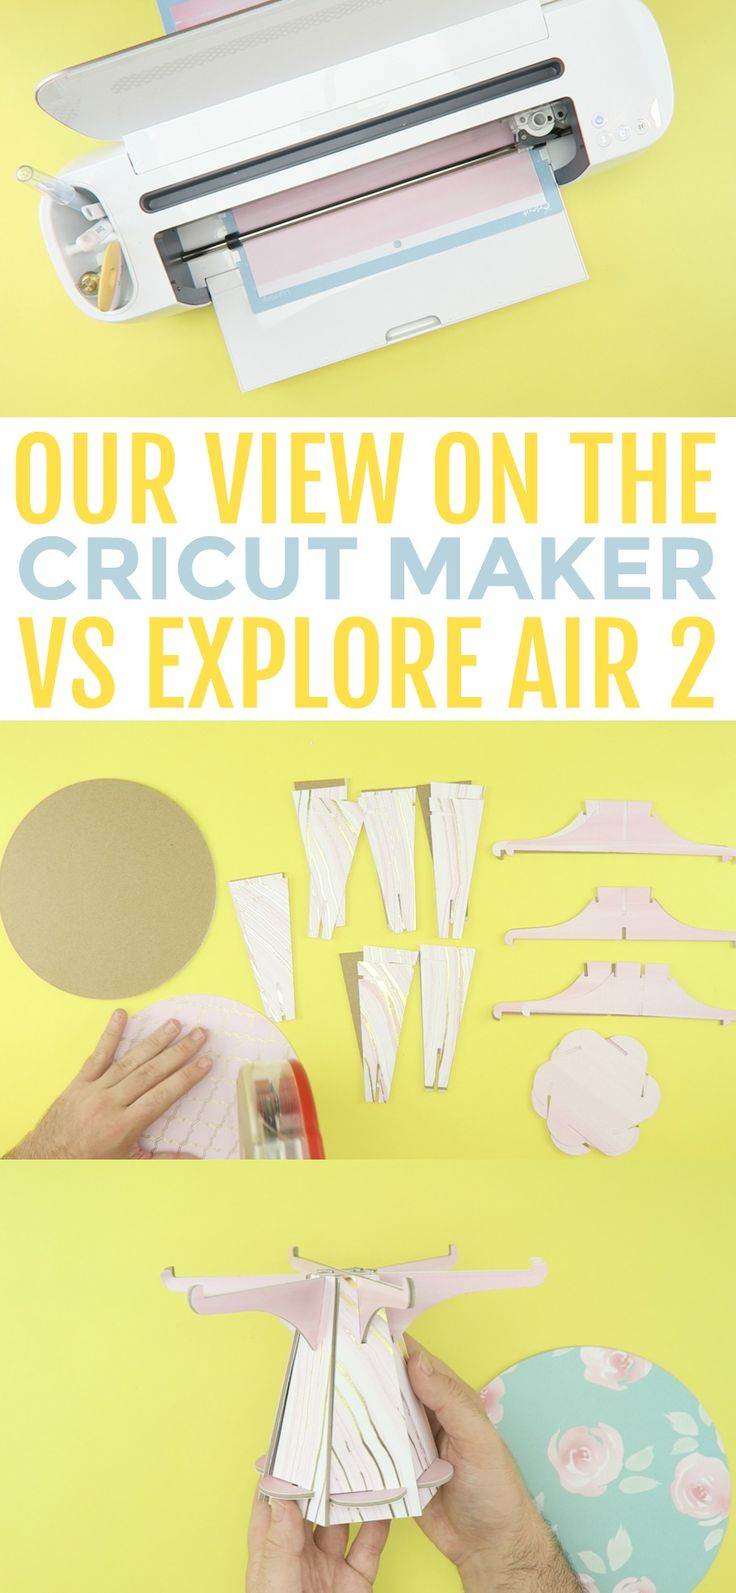 I thought it was time to write about the Maker vs Explore, and explain a little ...